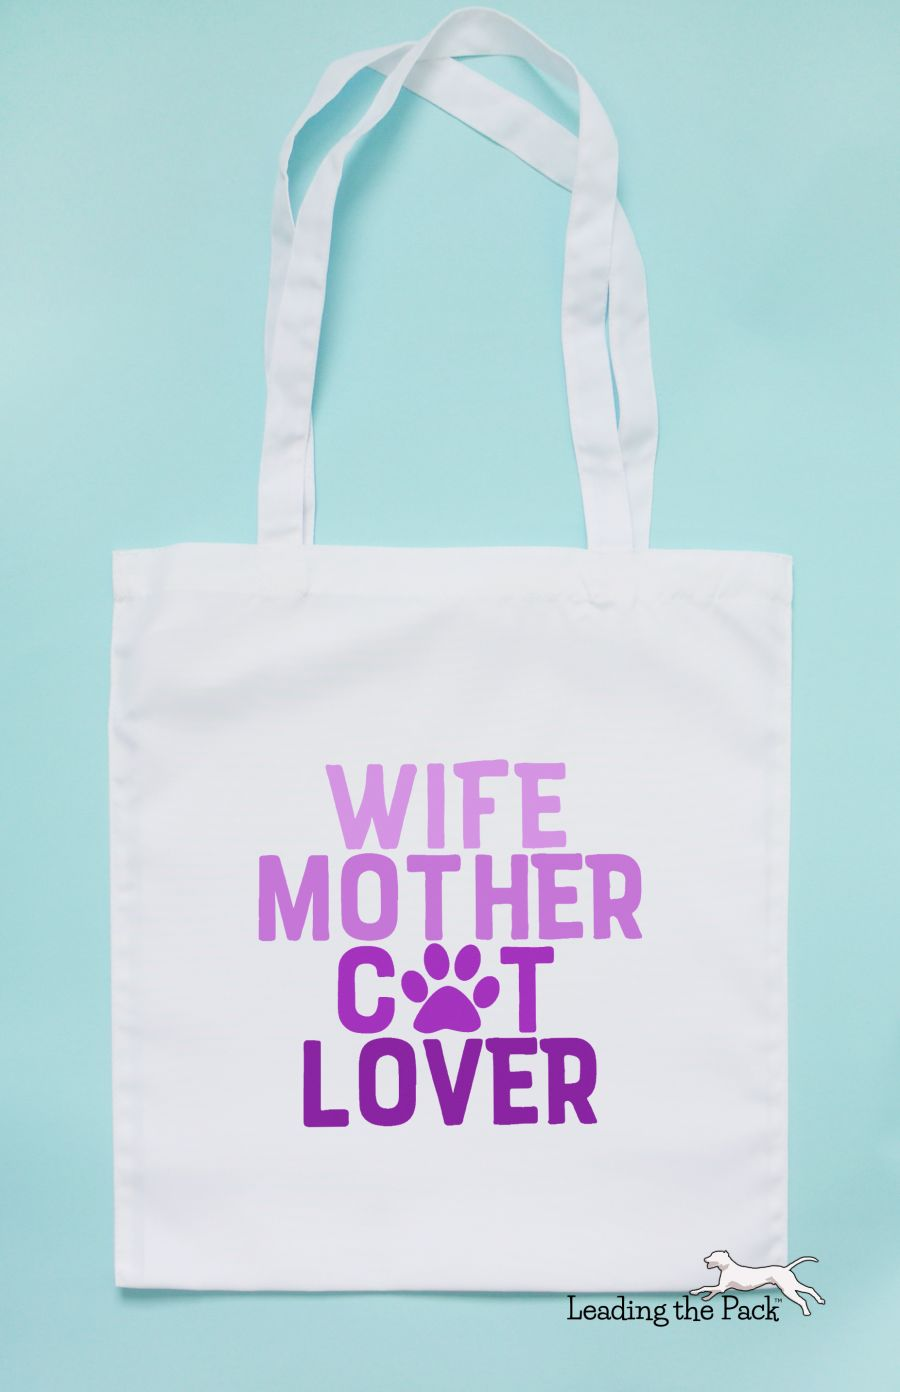 Wife mother cat lover tote bag